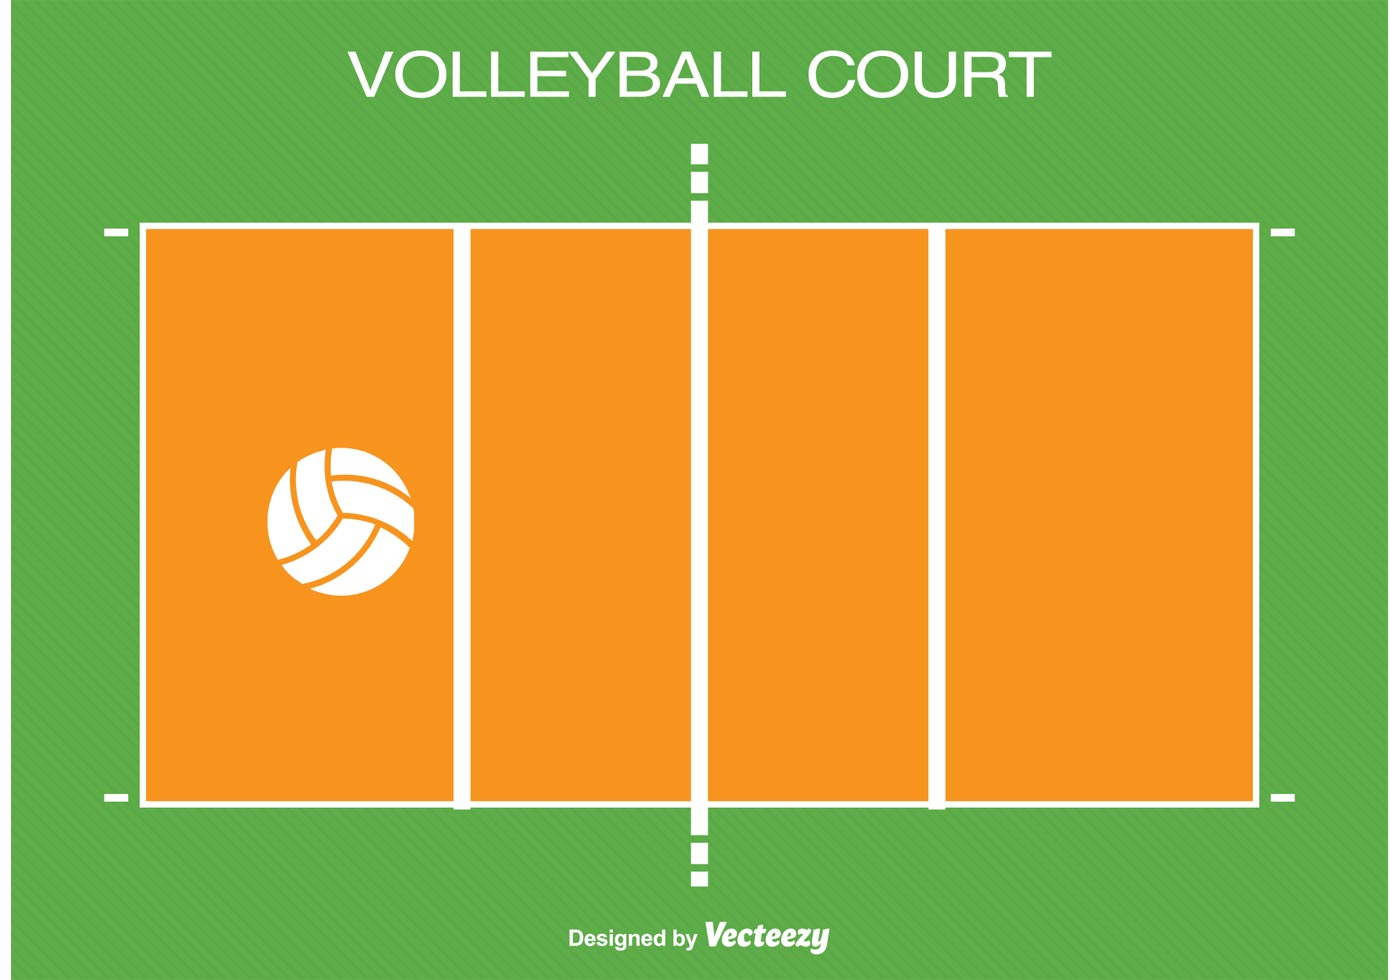 beach volleyball court diagram 2001 mitsubishi montero sport belt free vector art 439 downloads